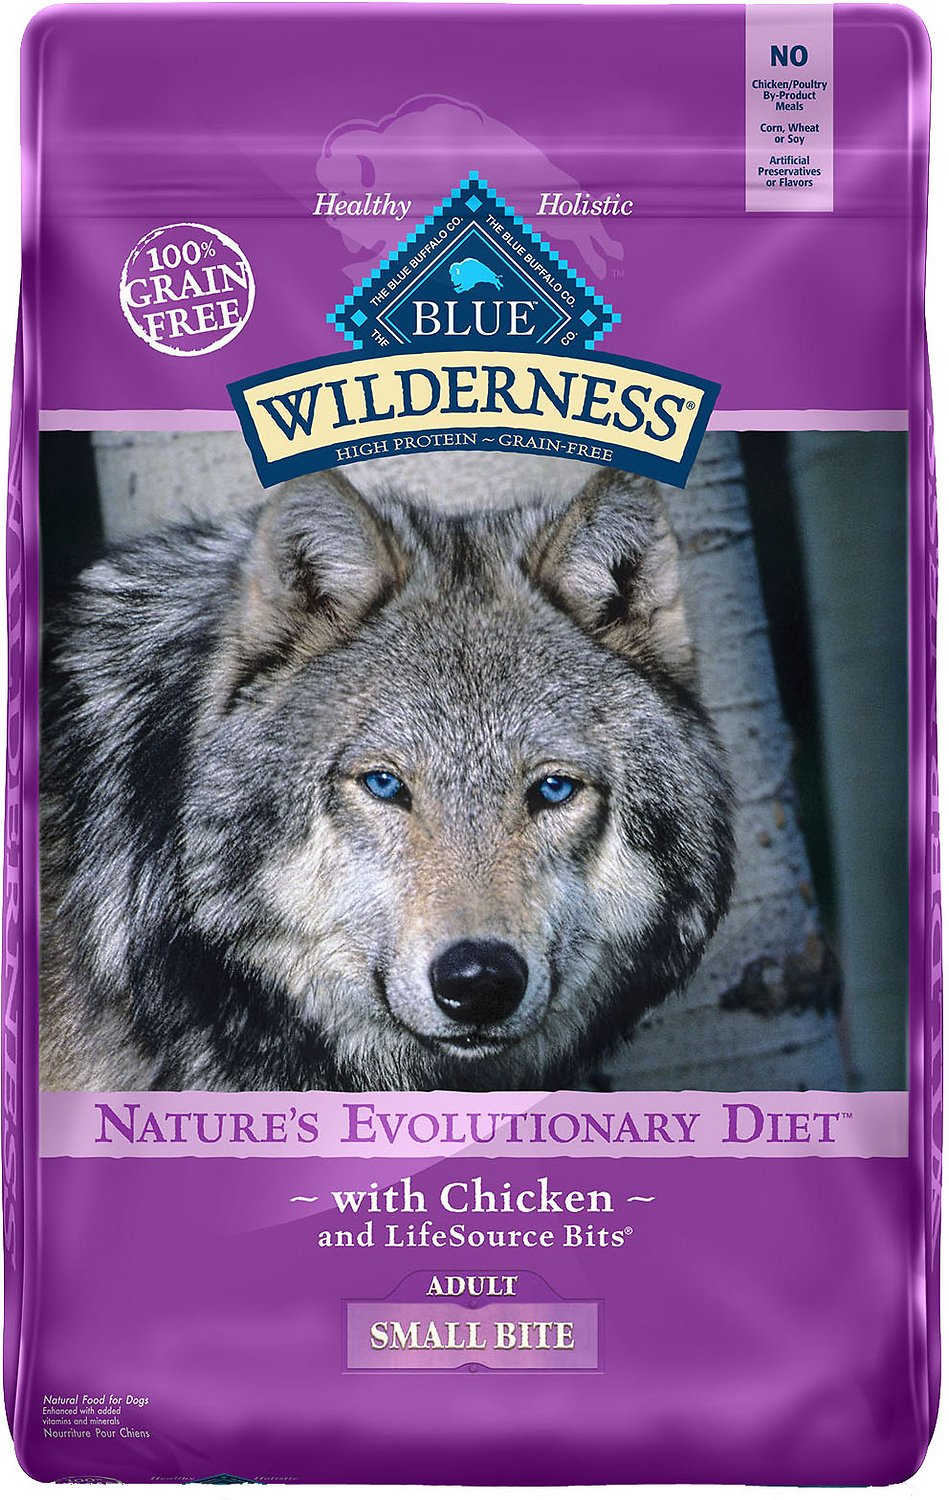 Blue Buffalo Wilderness Adult Small Bite Chicken Recipe Grain-Free Dry Dog Food Image